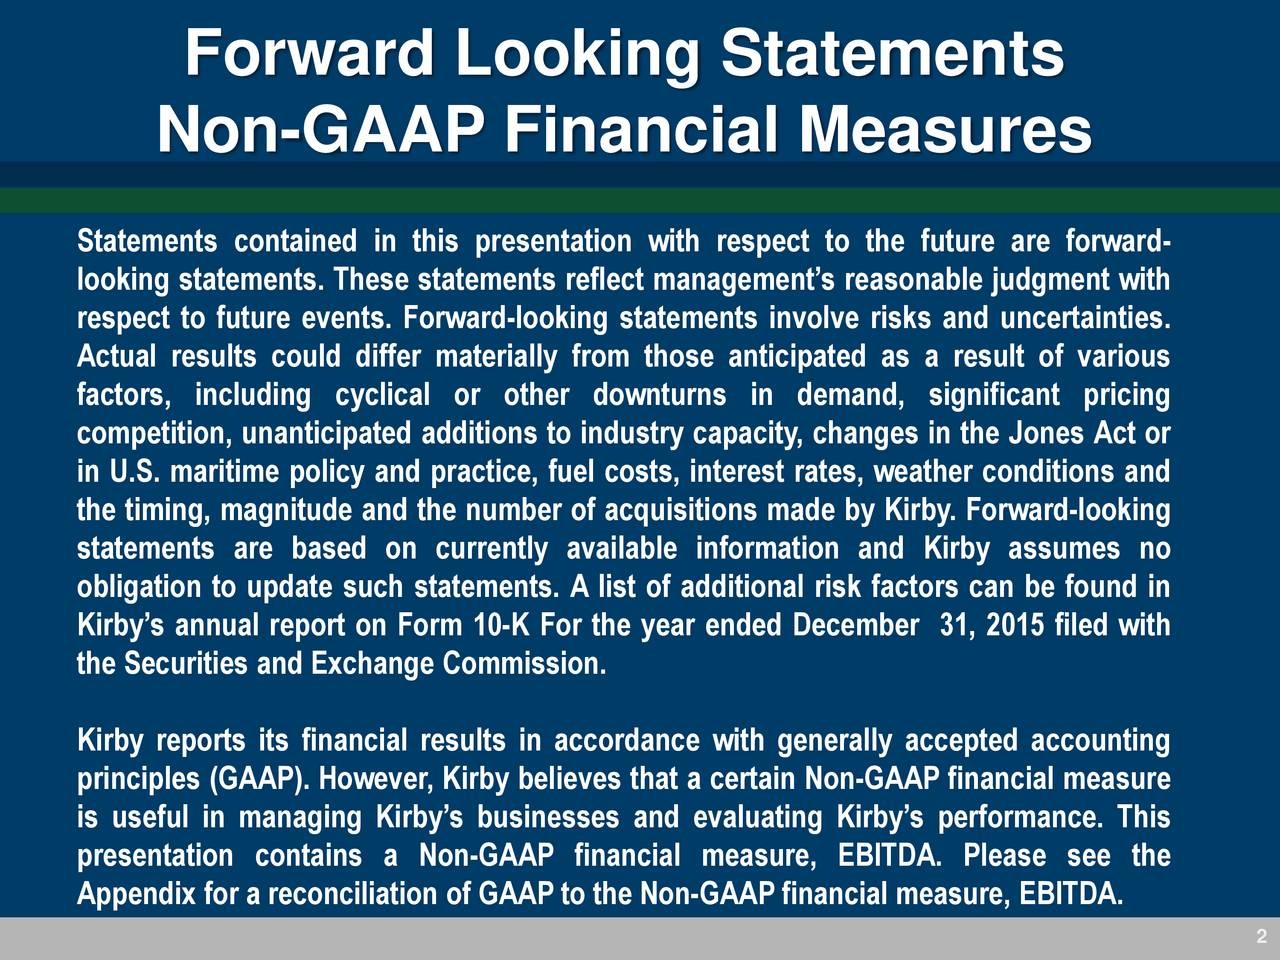 Non-GAAP Financial Measures Statements contained in this presentation with respect to the future are forward- looking statements. These statements reflect managements reasonable judgment with respect to future events. Forward-looking statements involve risks and uncertainties. Actual results could differ materially from those anticipated as a result of various factors, including cyclical or other downturns in demand, significant pricing competition, unanticipated additions to industry capacity, changes in the Jones Act or in U.S. maritime policy and practice, fuel costs, interest rates, weather conditions and the timing, magnitude and the number of acquisitions made by Kirby. Forward-looking statements are based on currently available information and Kirby assumes no obligation to update such statements. A list of additional risk factors can be found in Kirbys annual report on Form 10-K For the year ended December 31, 2015 filed with the Securities and Exchange Commission. Kirby reports its financial results in accordance with generally accepted accounting principles (GAAP). However, Kirby believes that a certain Non-GAAP financial measure is useful in managing Kirbys businesses and evaluating Kirbys performance. This presentation contains a Non-GAAP financial measure, EBITDA. Please see the Appendix for a reconciliation of GAAP to the Non-GAAP financial measure, EBITDA.